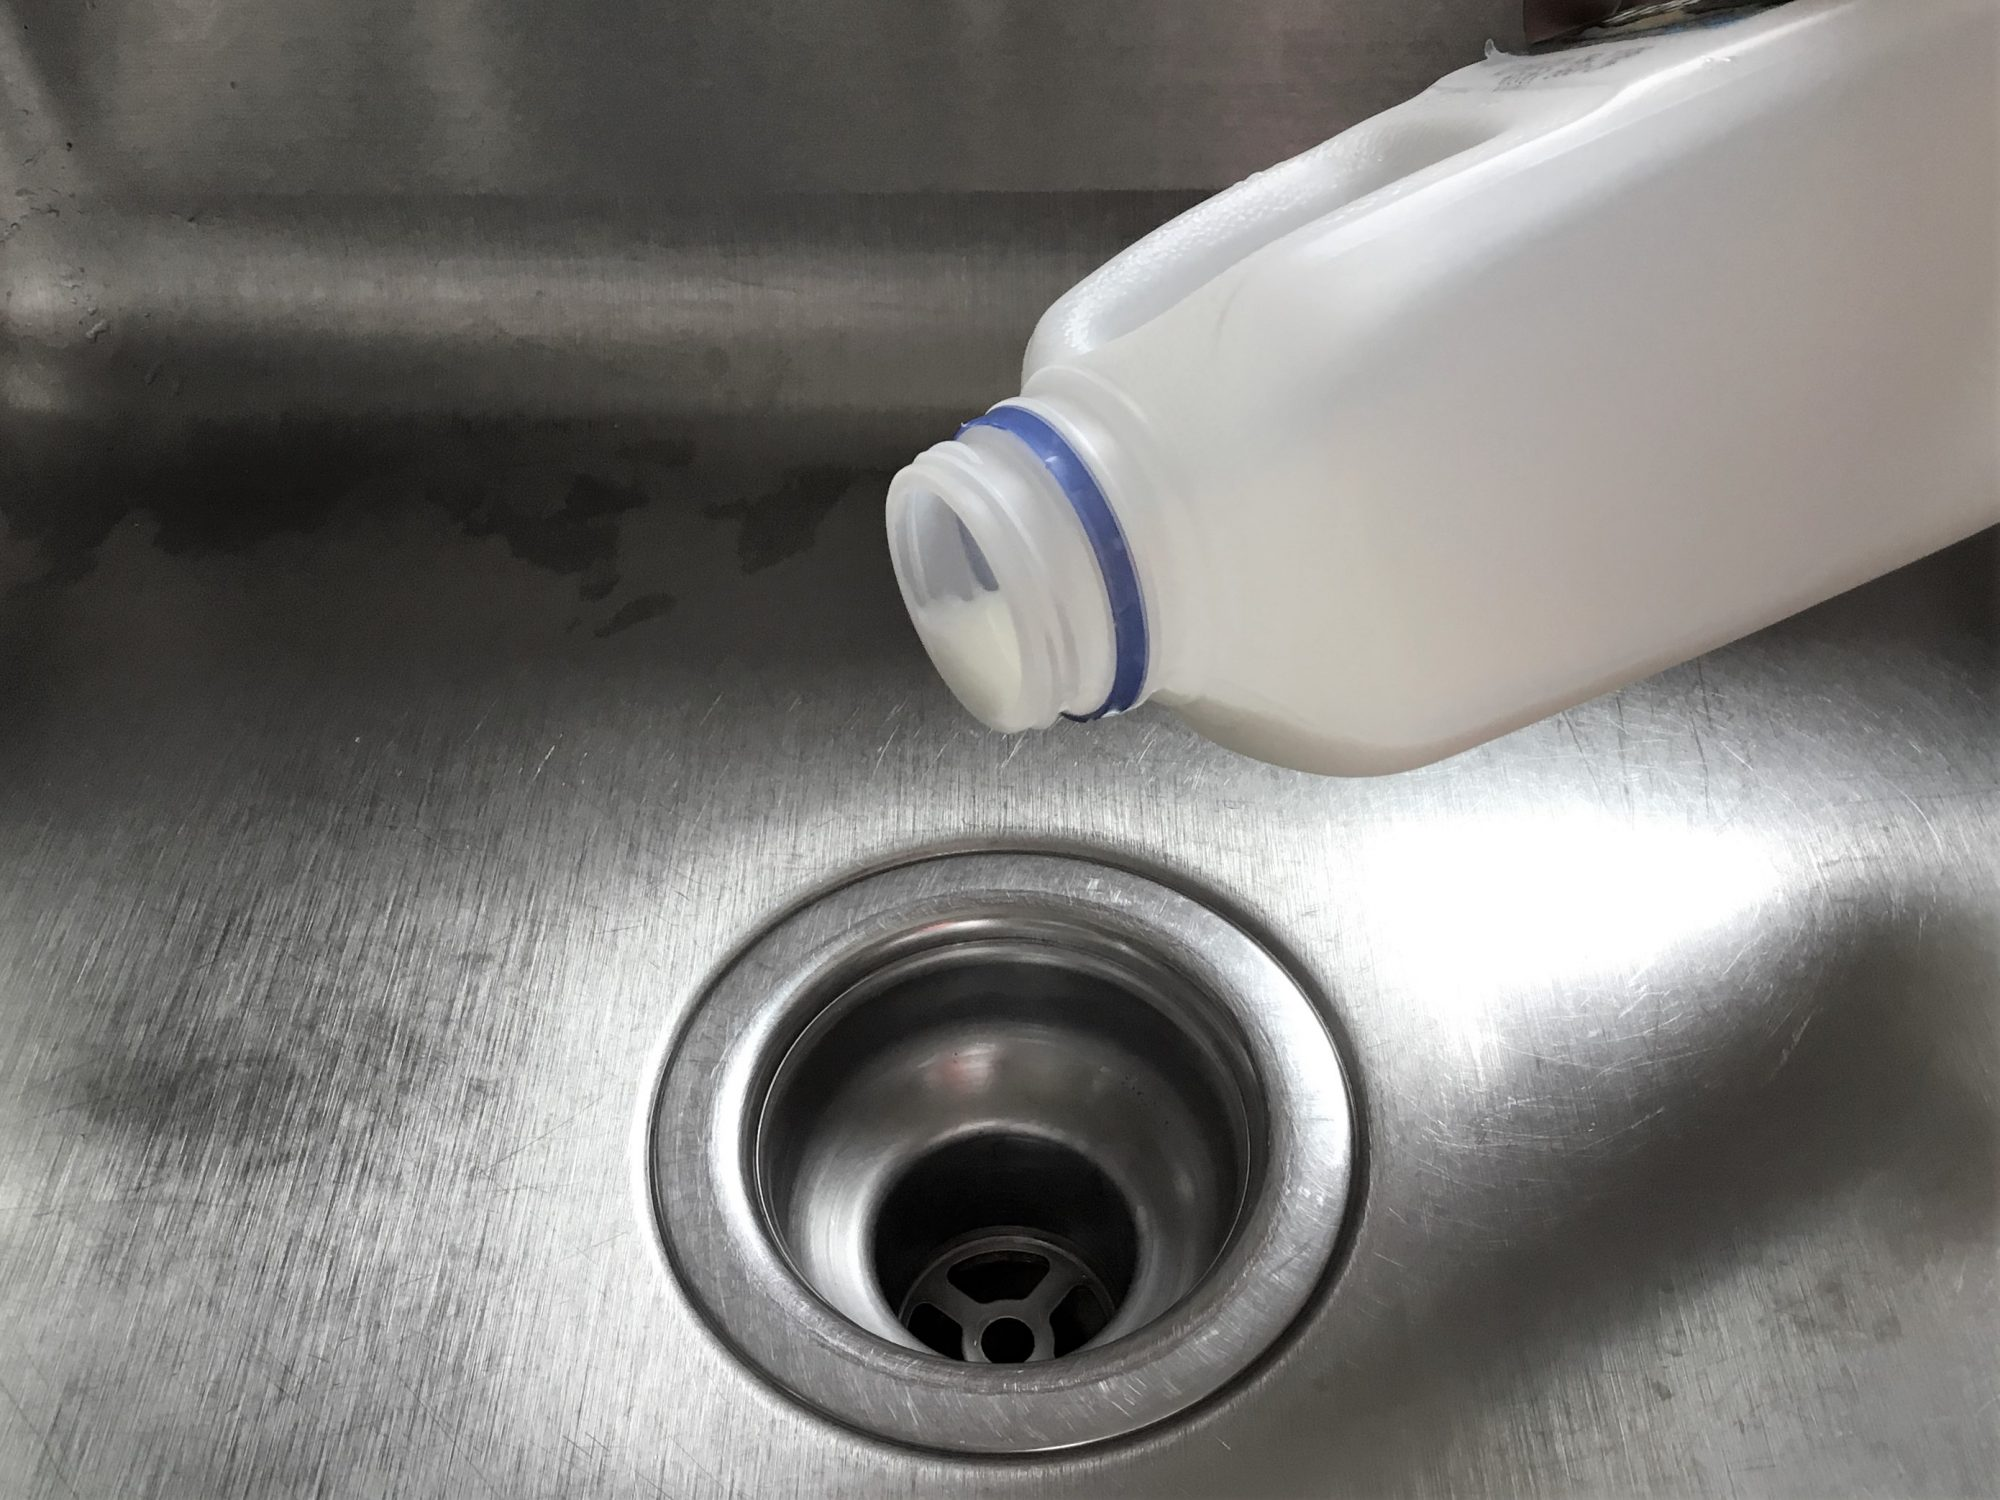 a jug of milk about to be poured down the drain of a stainless steel sink